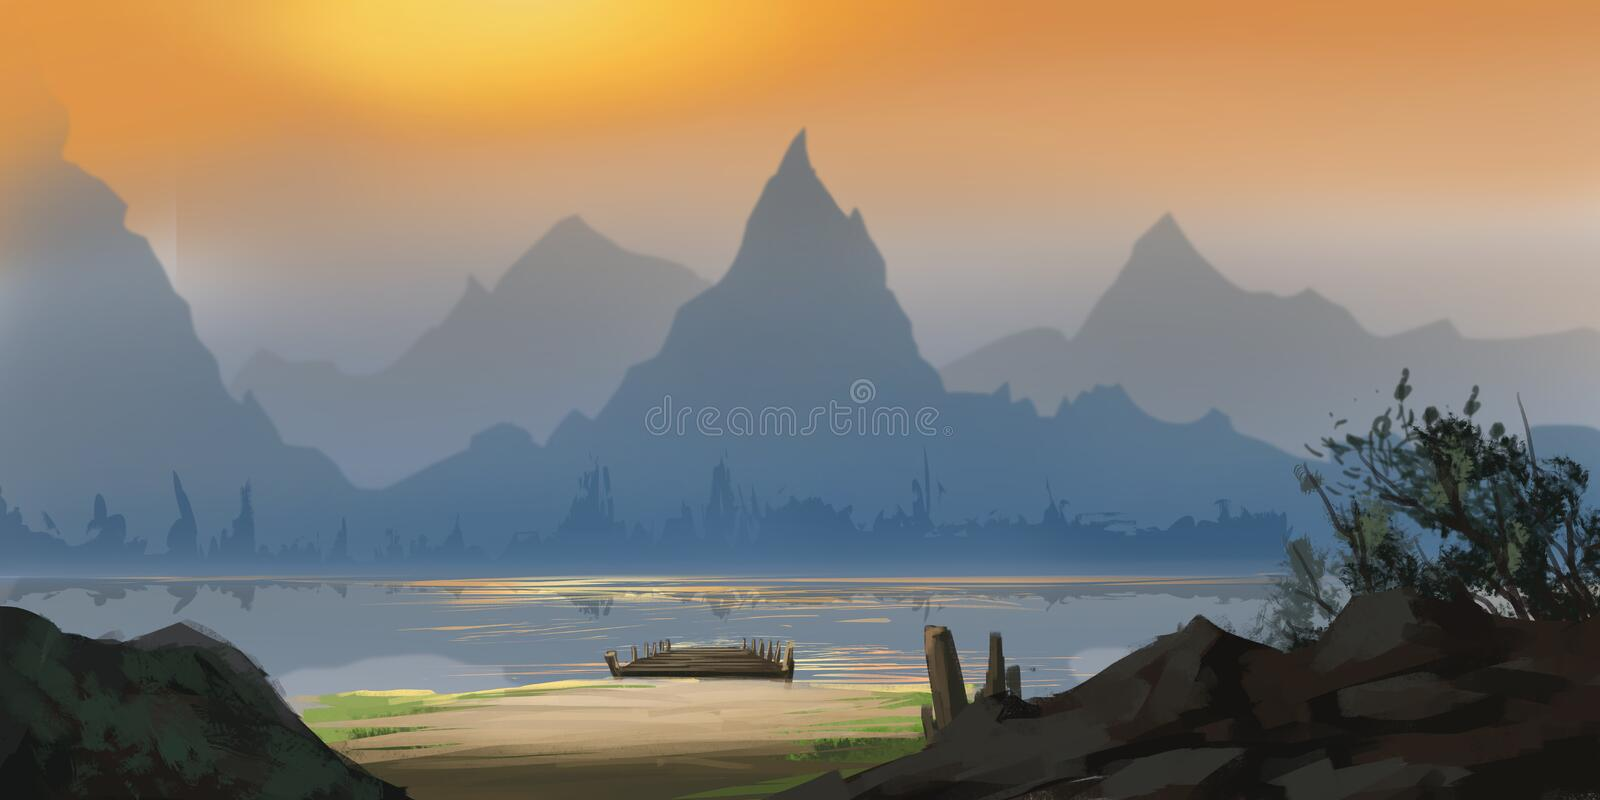 Chinese Mountain and River. Fiction Backdrop. Concept Art royalty free illustration